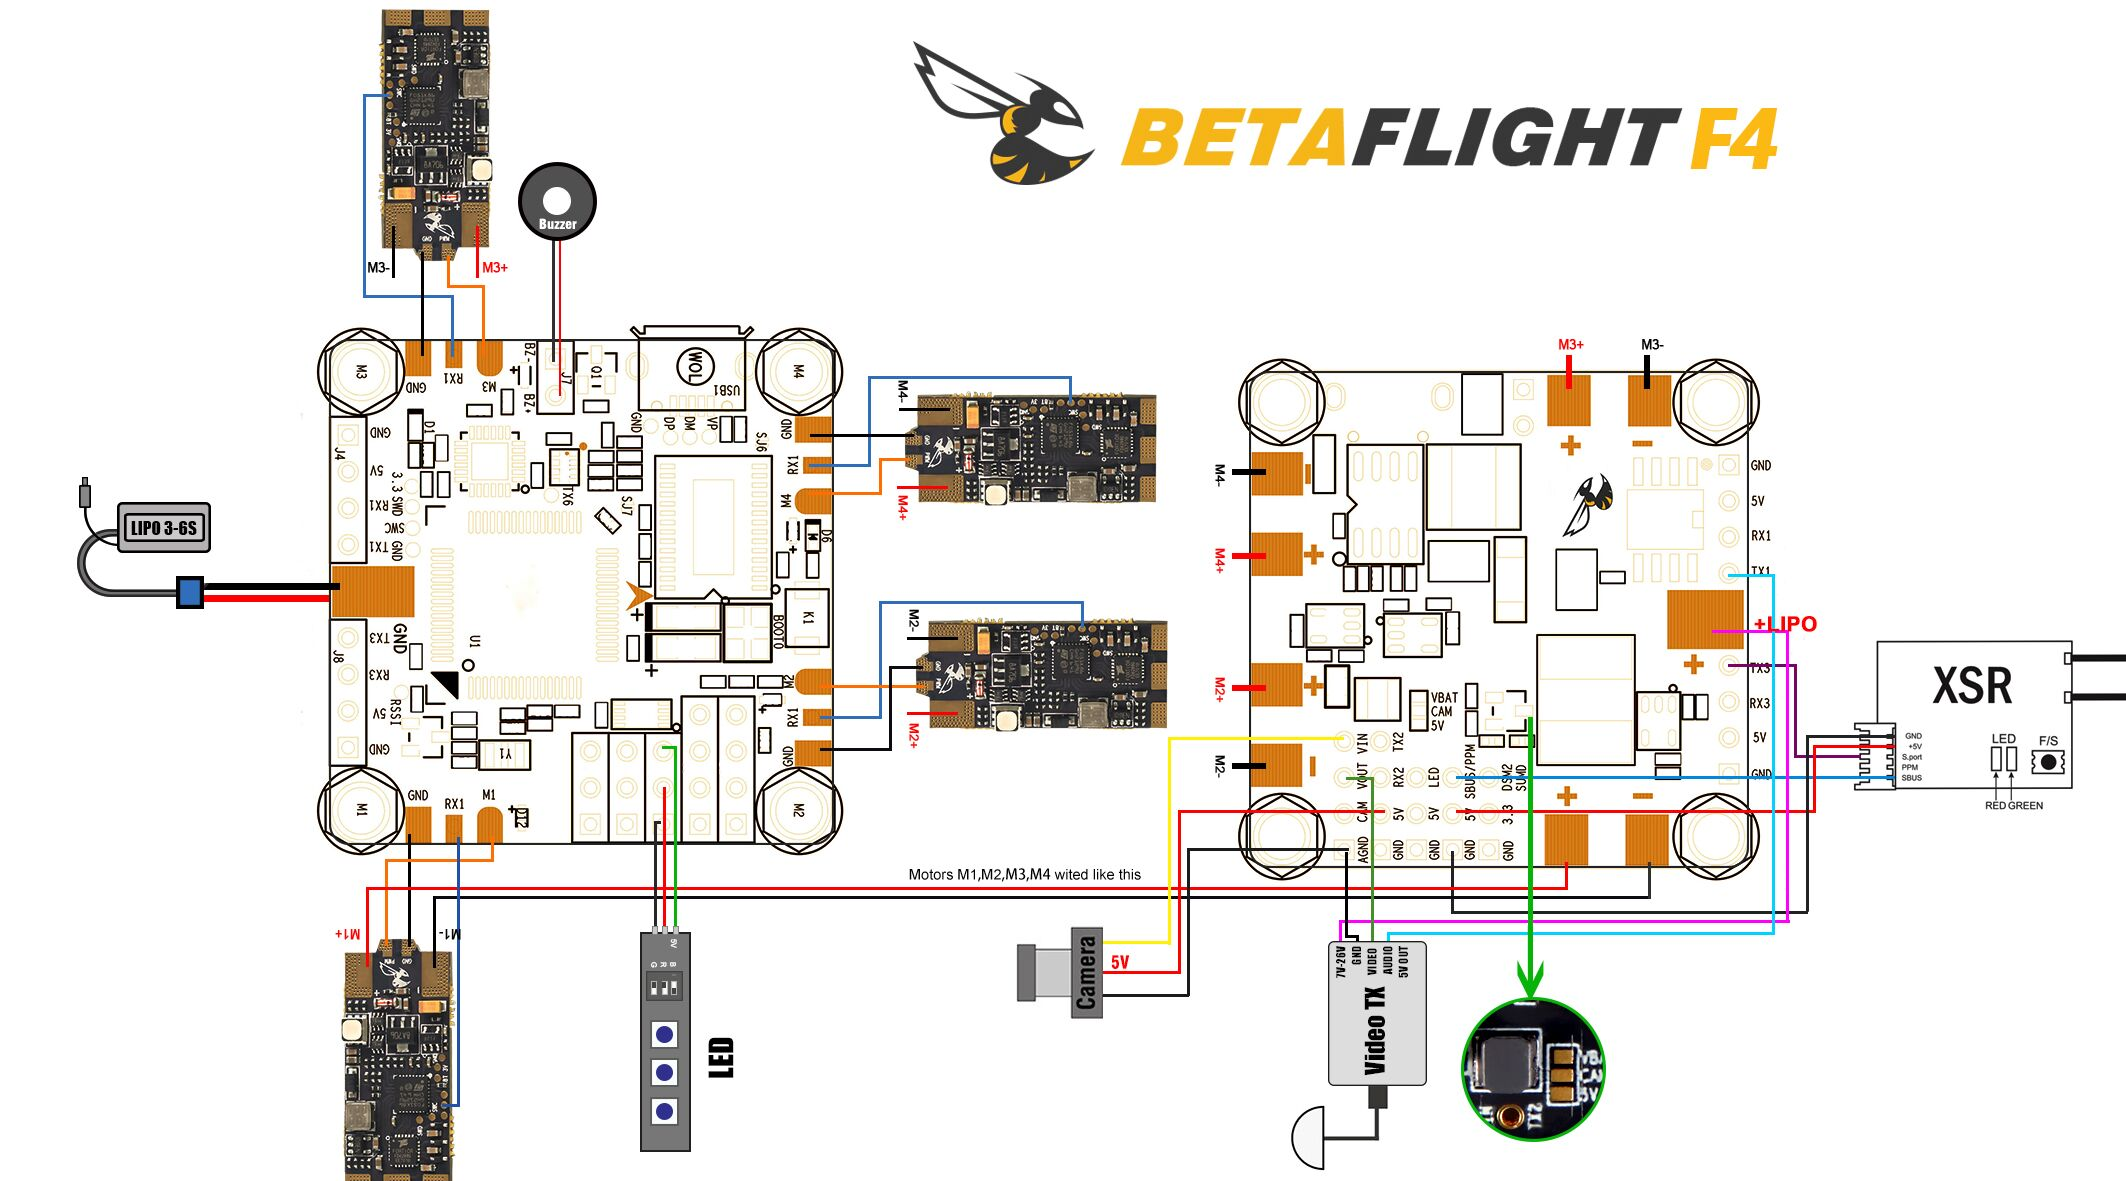 BF4_wiring betaflight f4 flight controller betaflight f3 wiring diagram at gsmportal.co